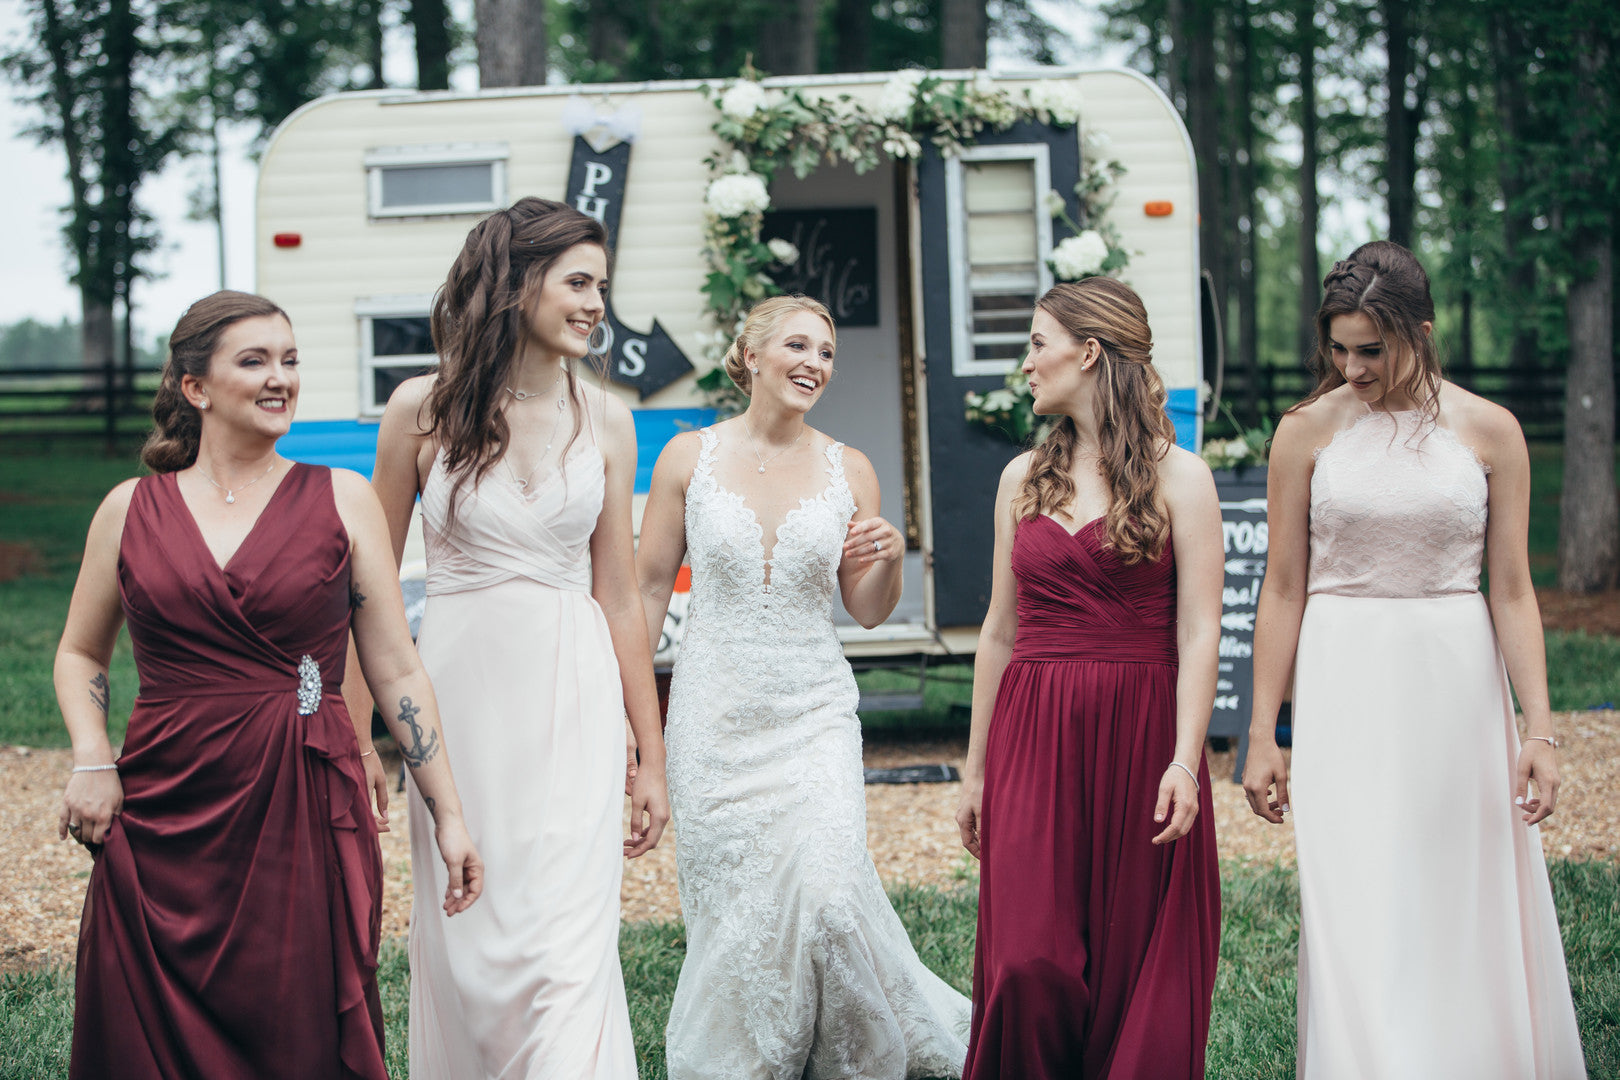 Brides and BridesmaidsBride and Bridesmaids Playing Games | Girls Just Want to Have Fun Bridal Shower | Kate Aspen